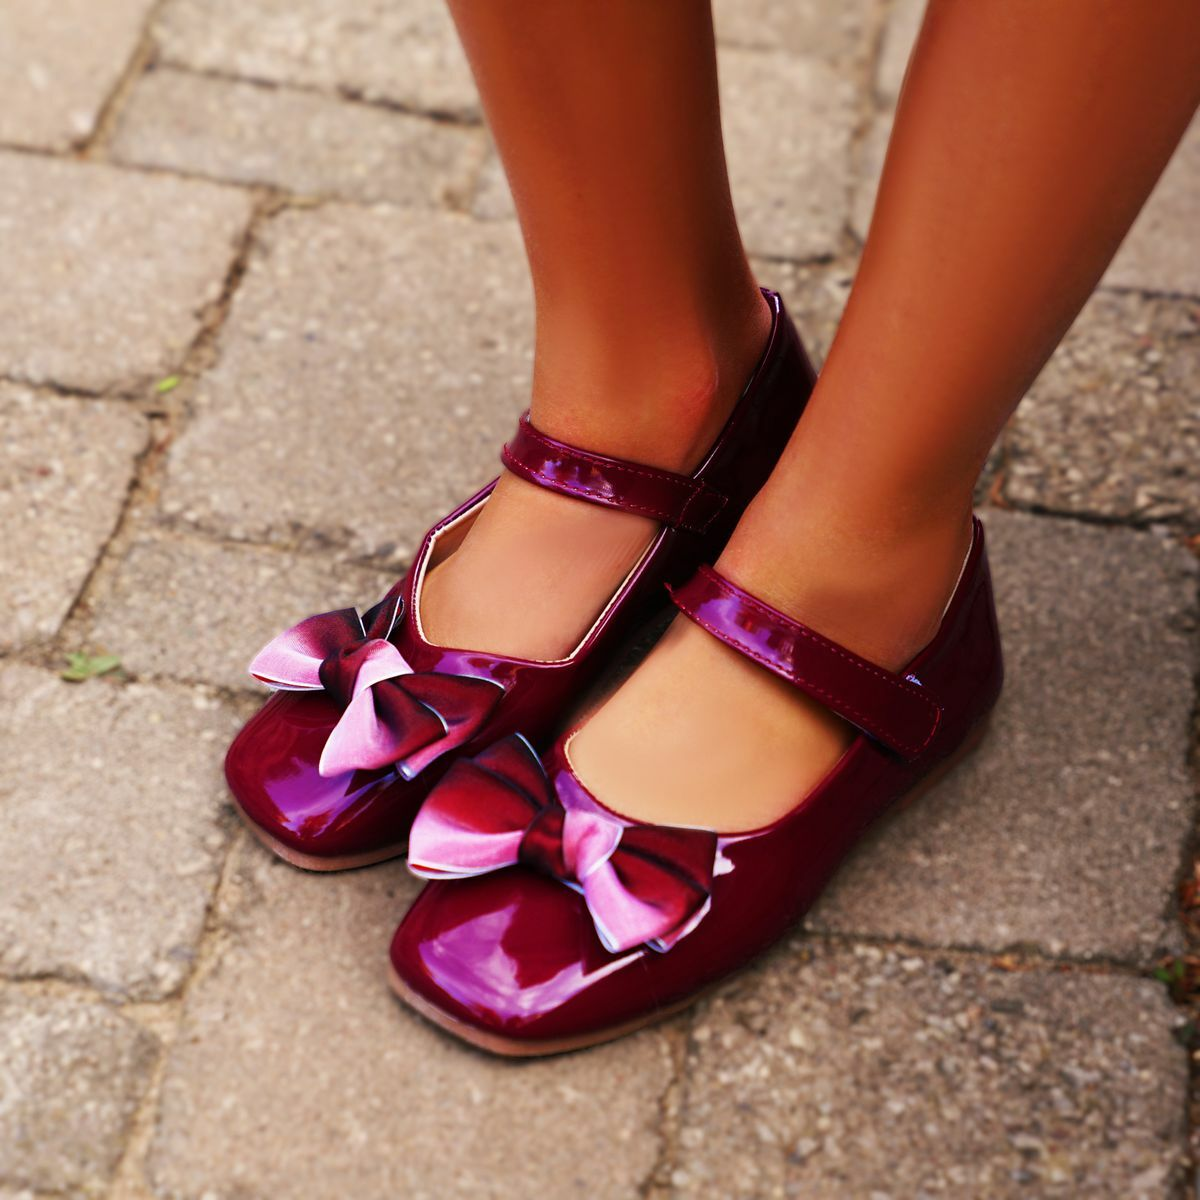 Robyn shoes in ombre red